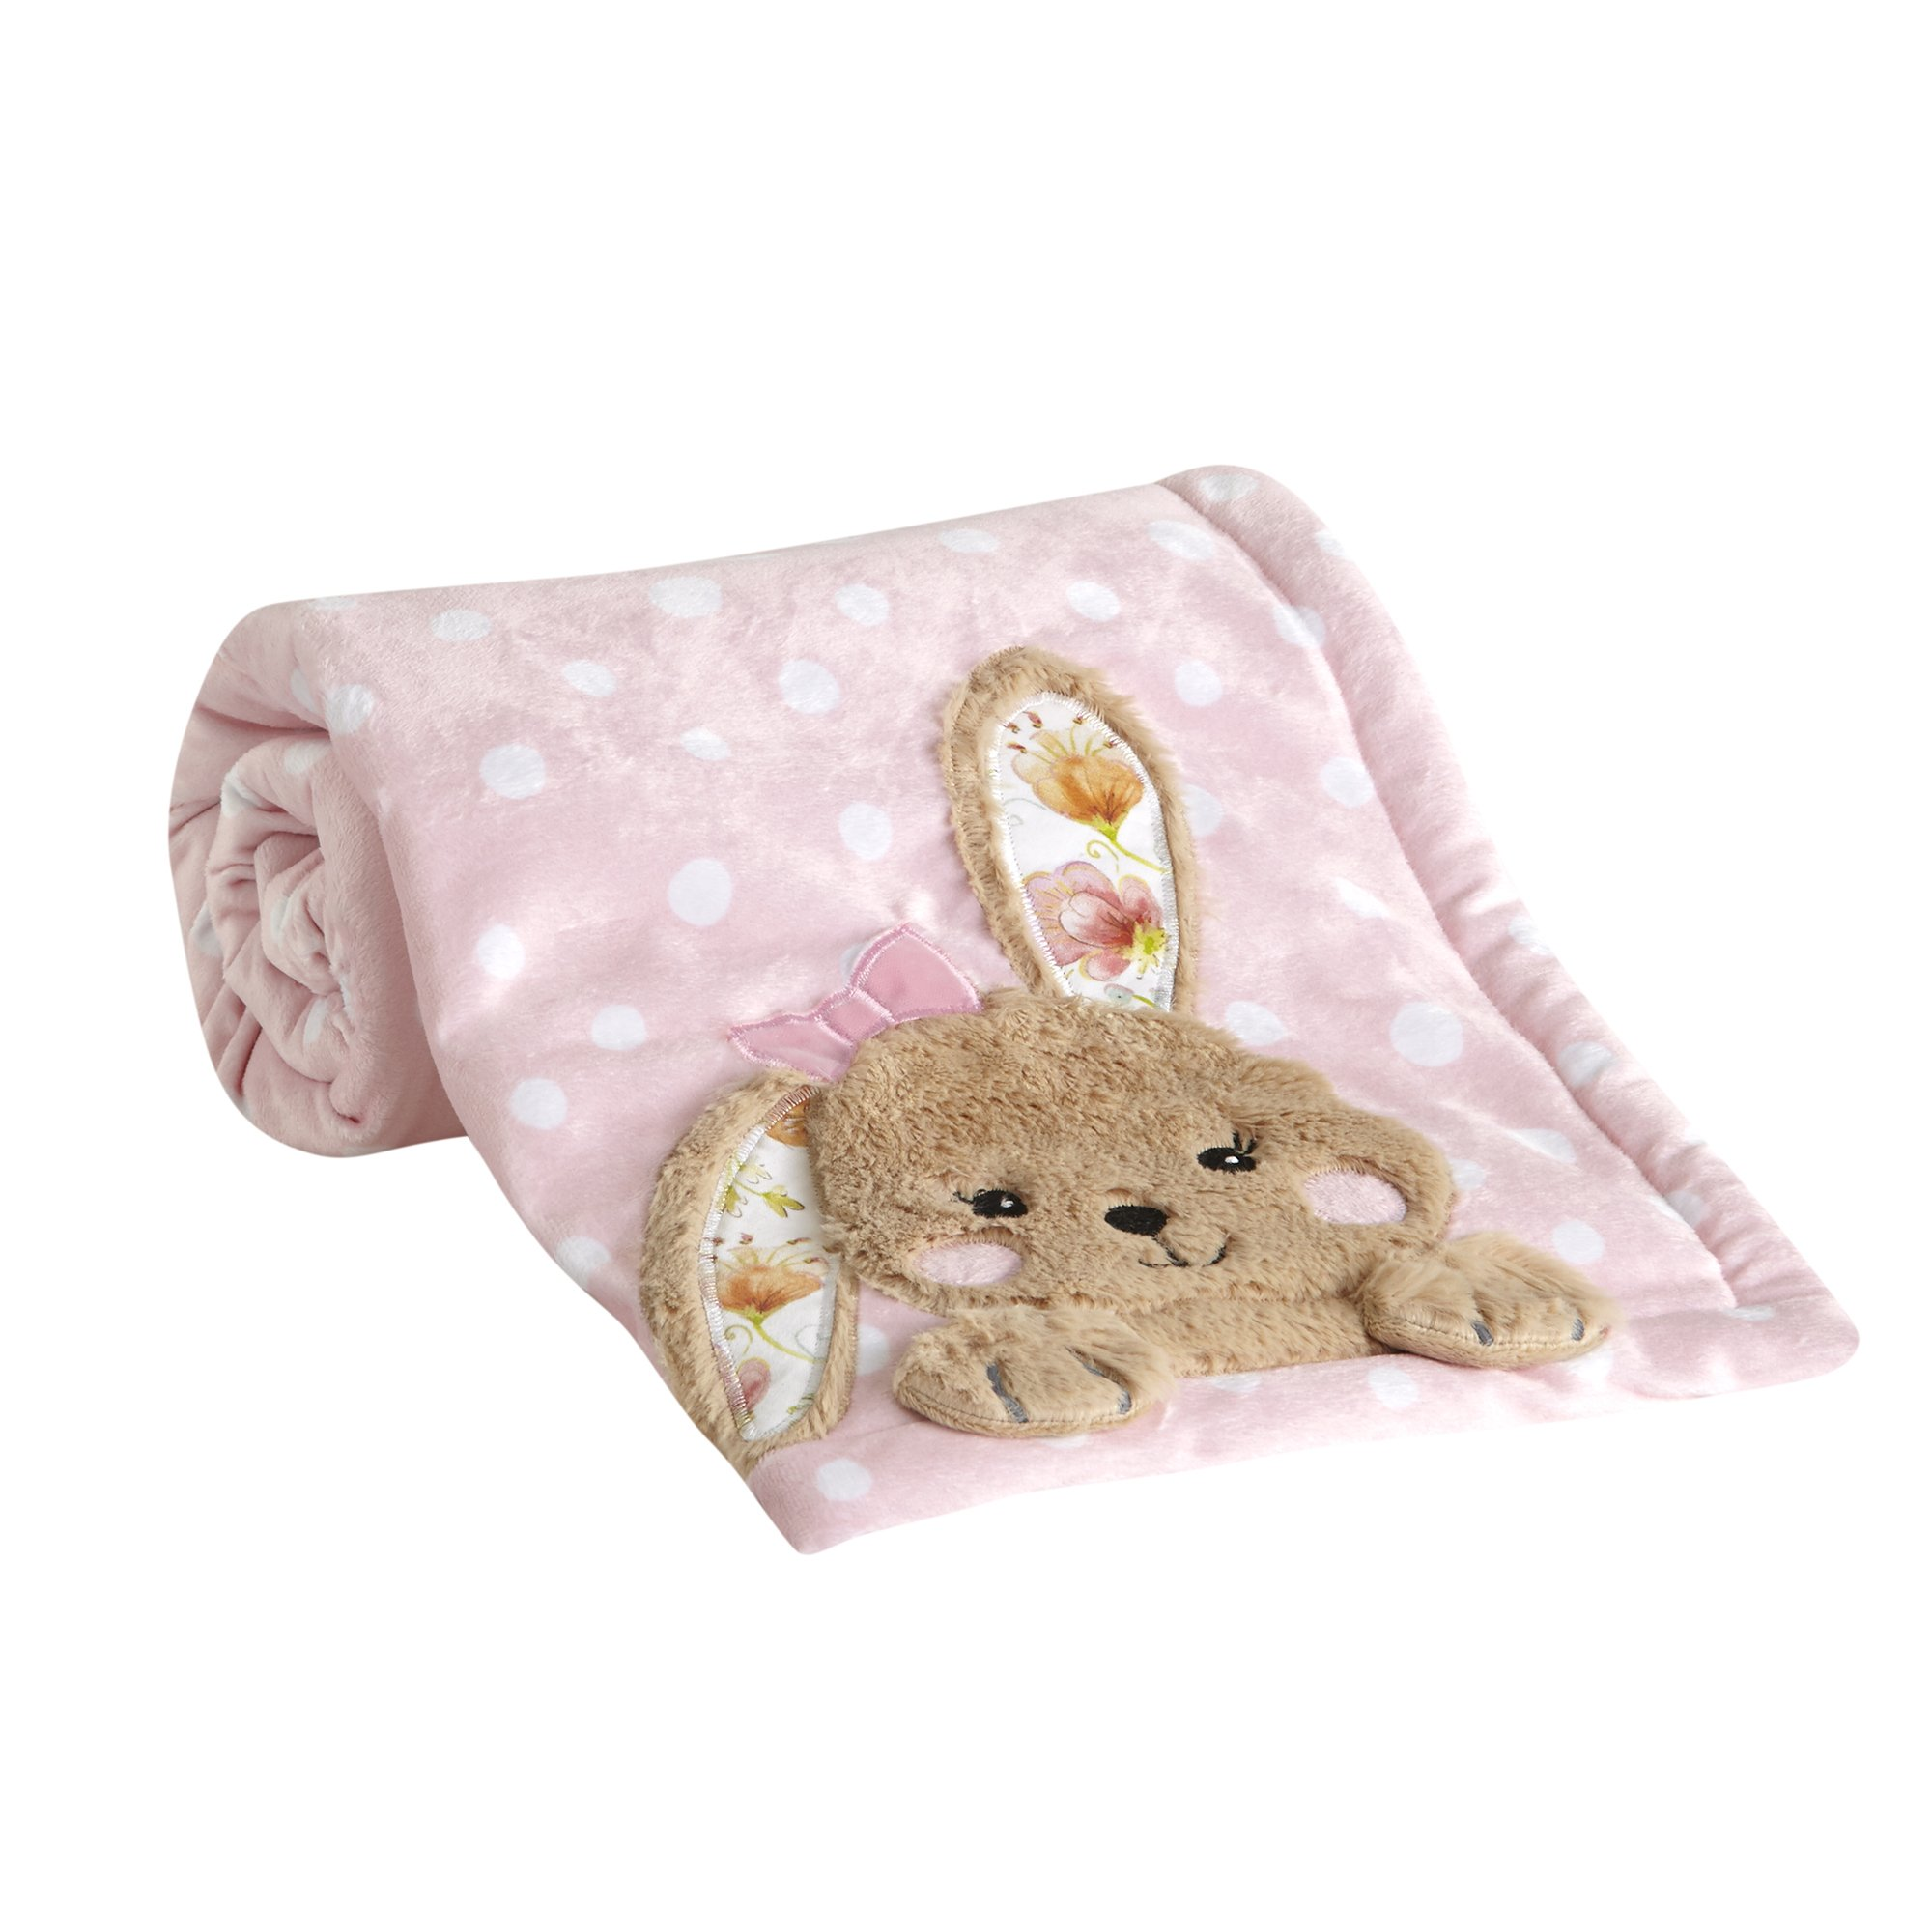 Lambs & Ivy Sweet Spring Pink Polka Dot Bunny Luxury Fleece Baby Blanket